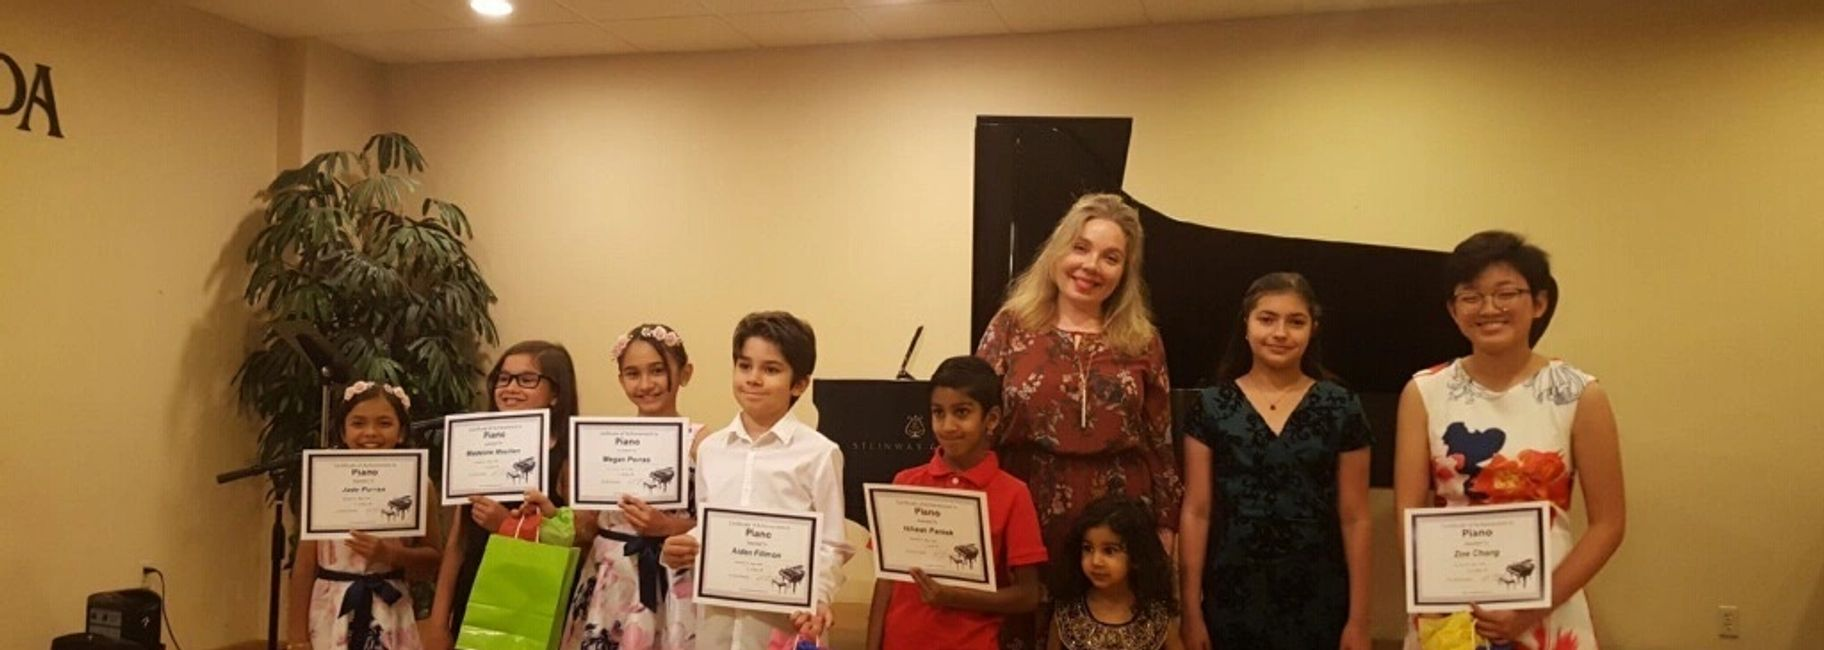 Piano Lessons for Children and Adults of all ages and levels at the Las Vegas Piano School